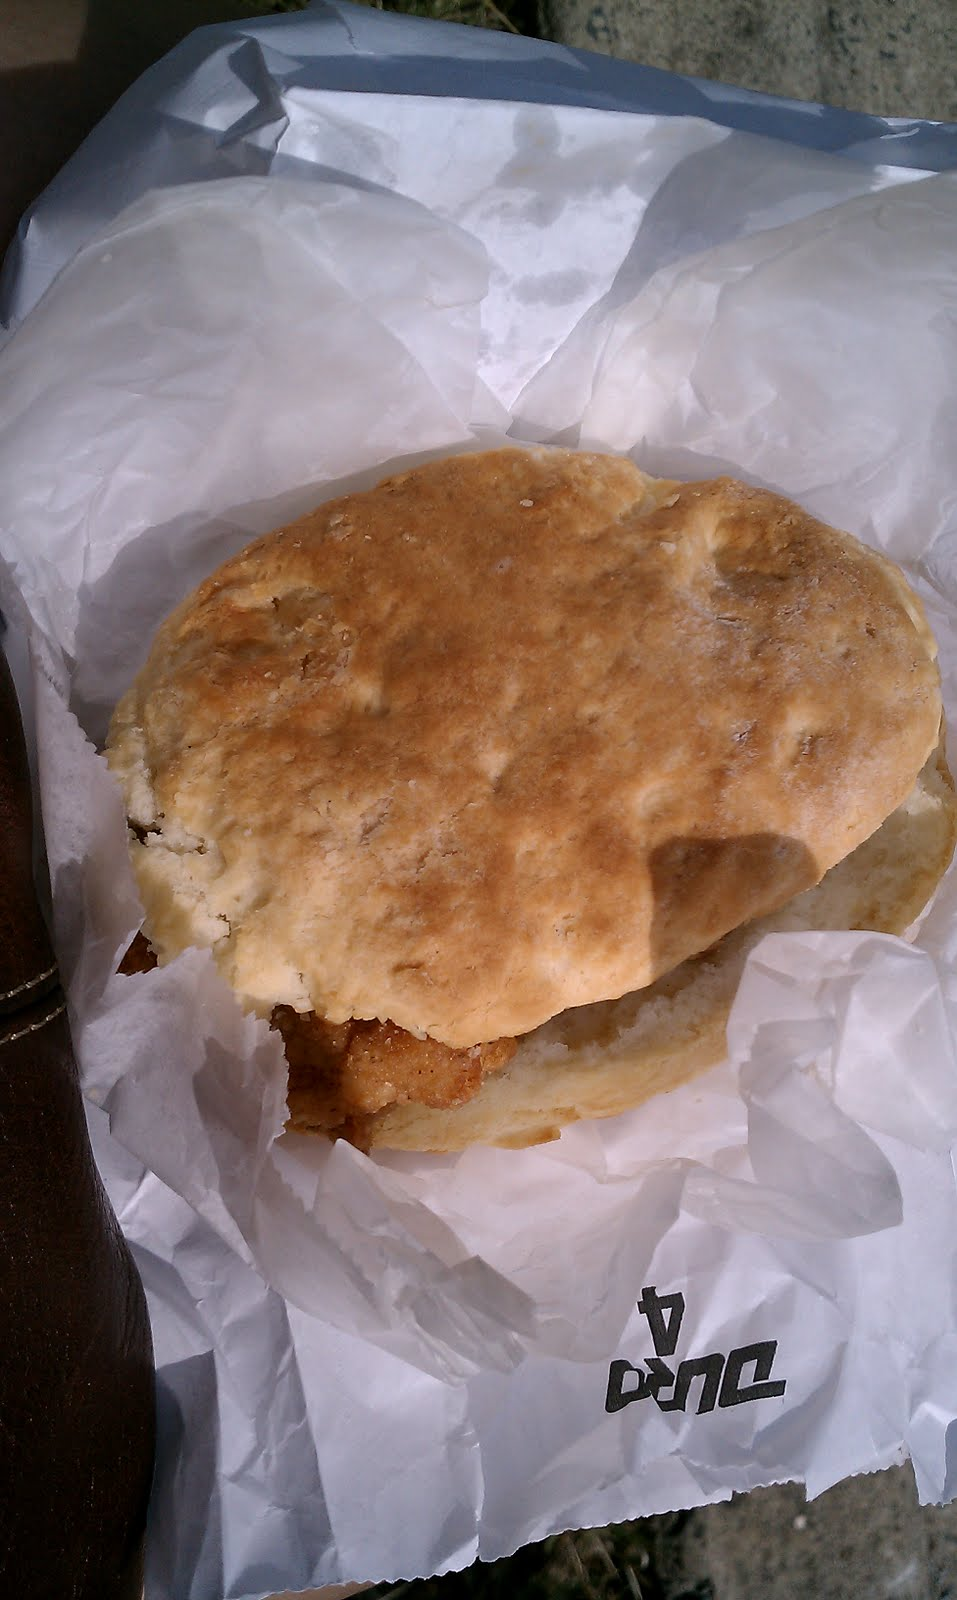 tasty eating: my trip to chapel hill, nc: sunrise biscuit kitchen